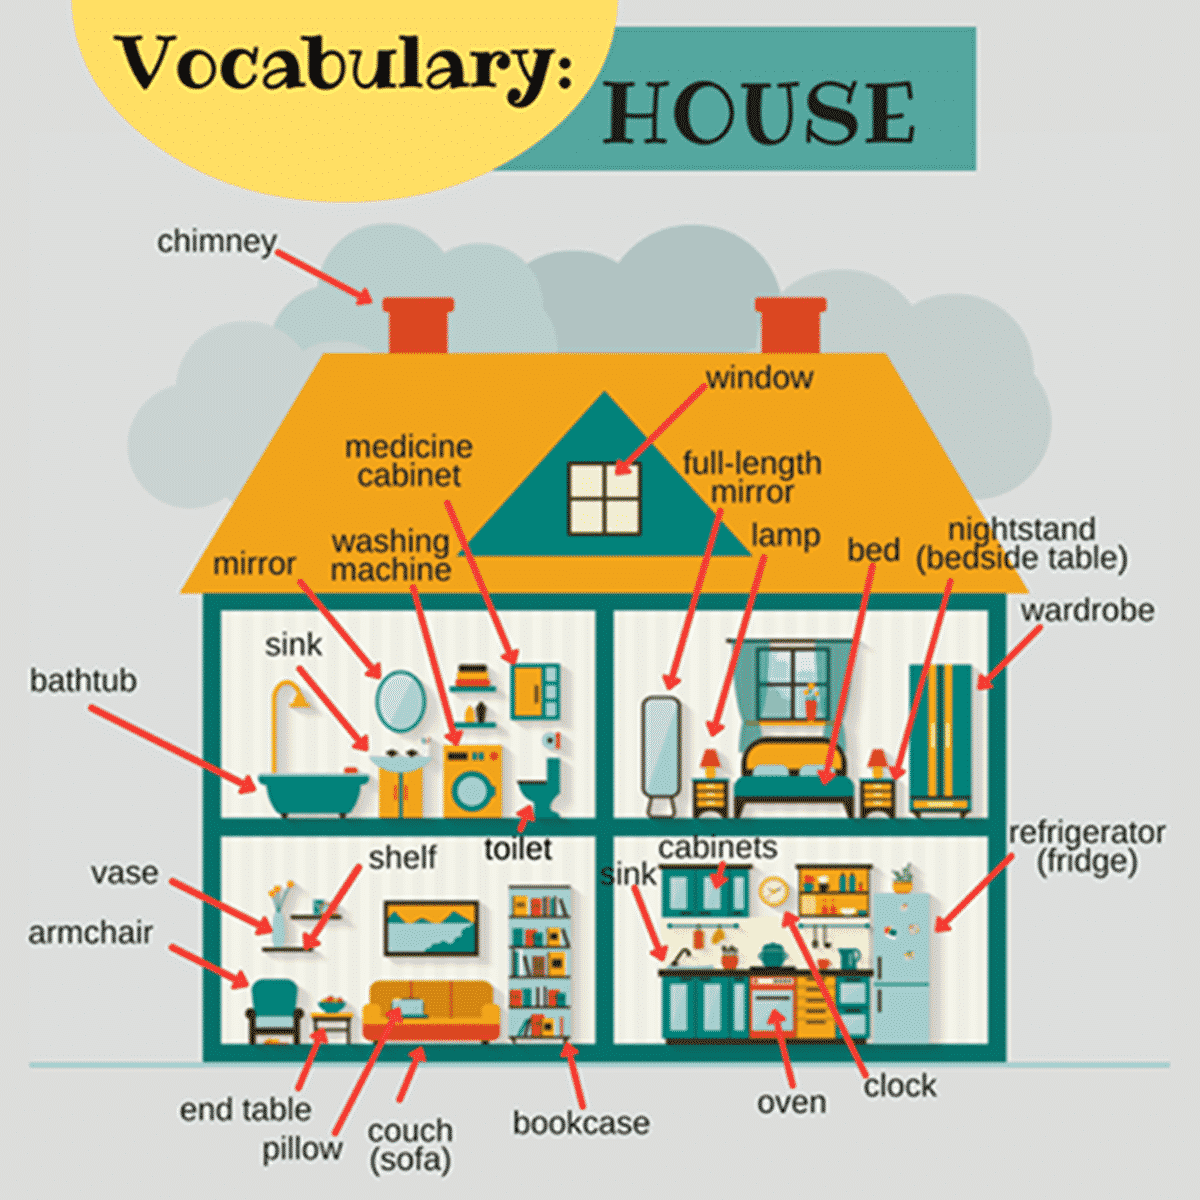 furnitures list furniture vocabulary 250 items illustrated eslbuzz